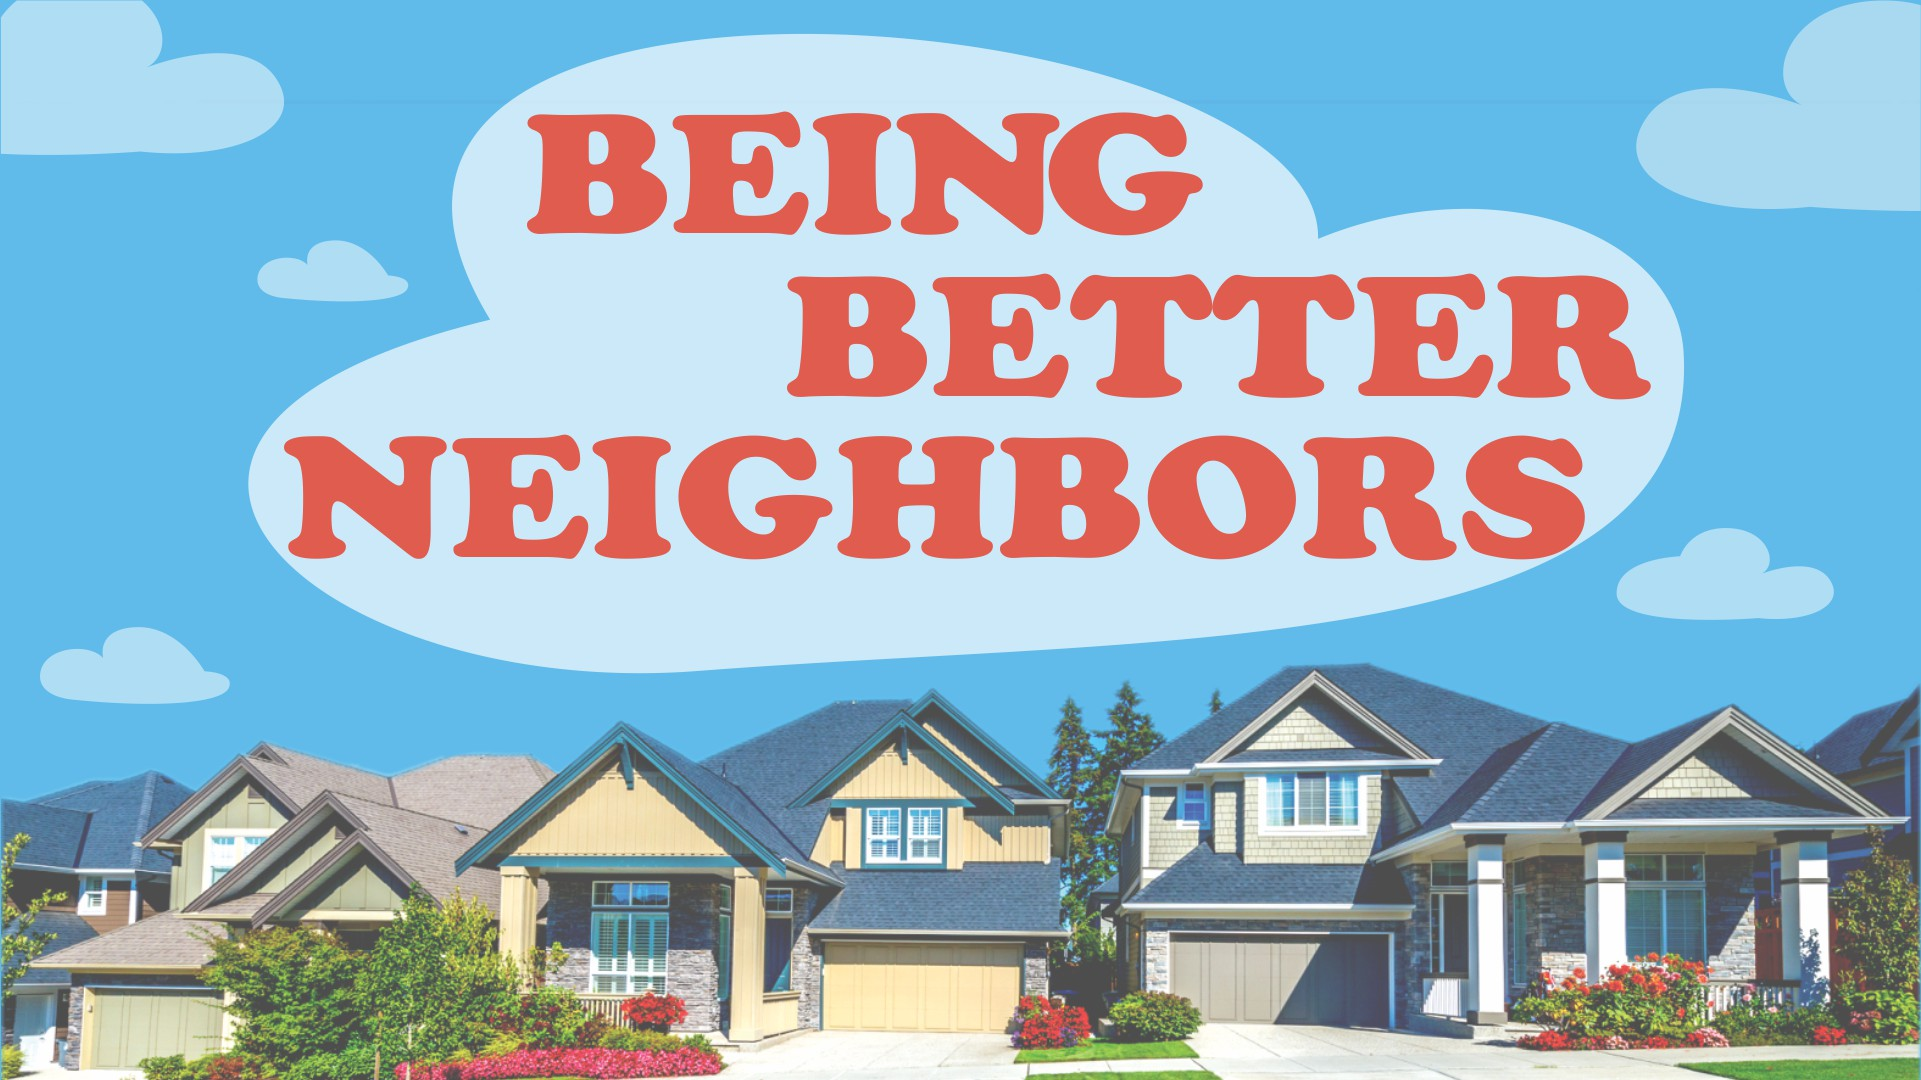 Being-Better-Neighbors-slide.jpg